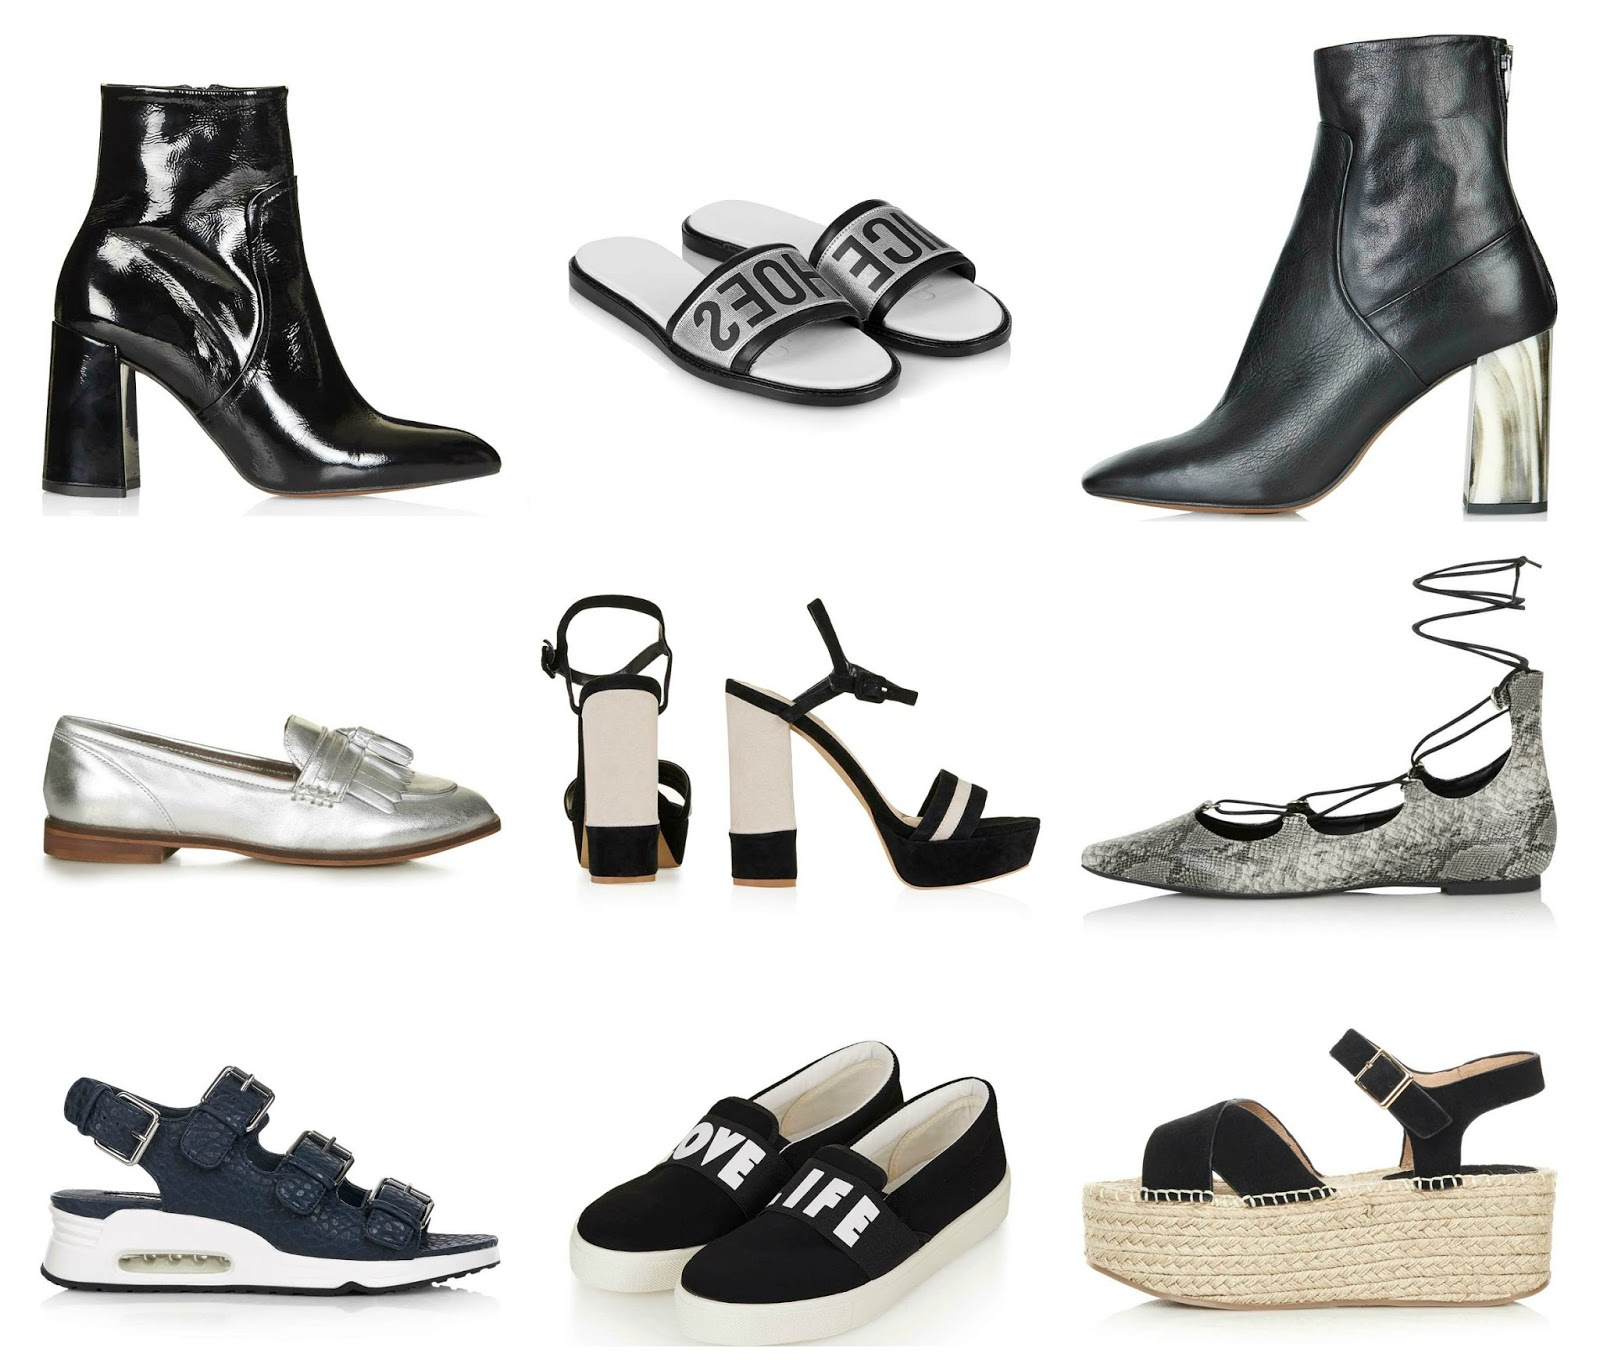 topshop shoe picks